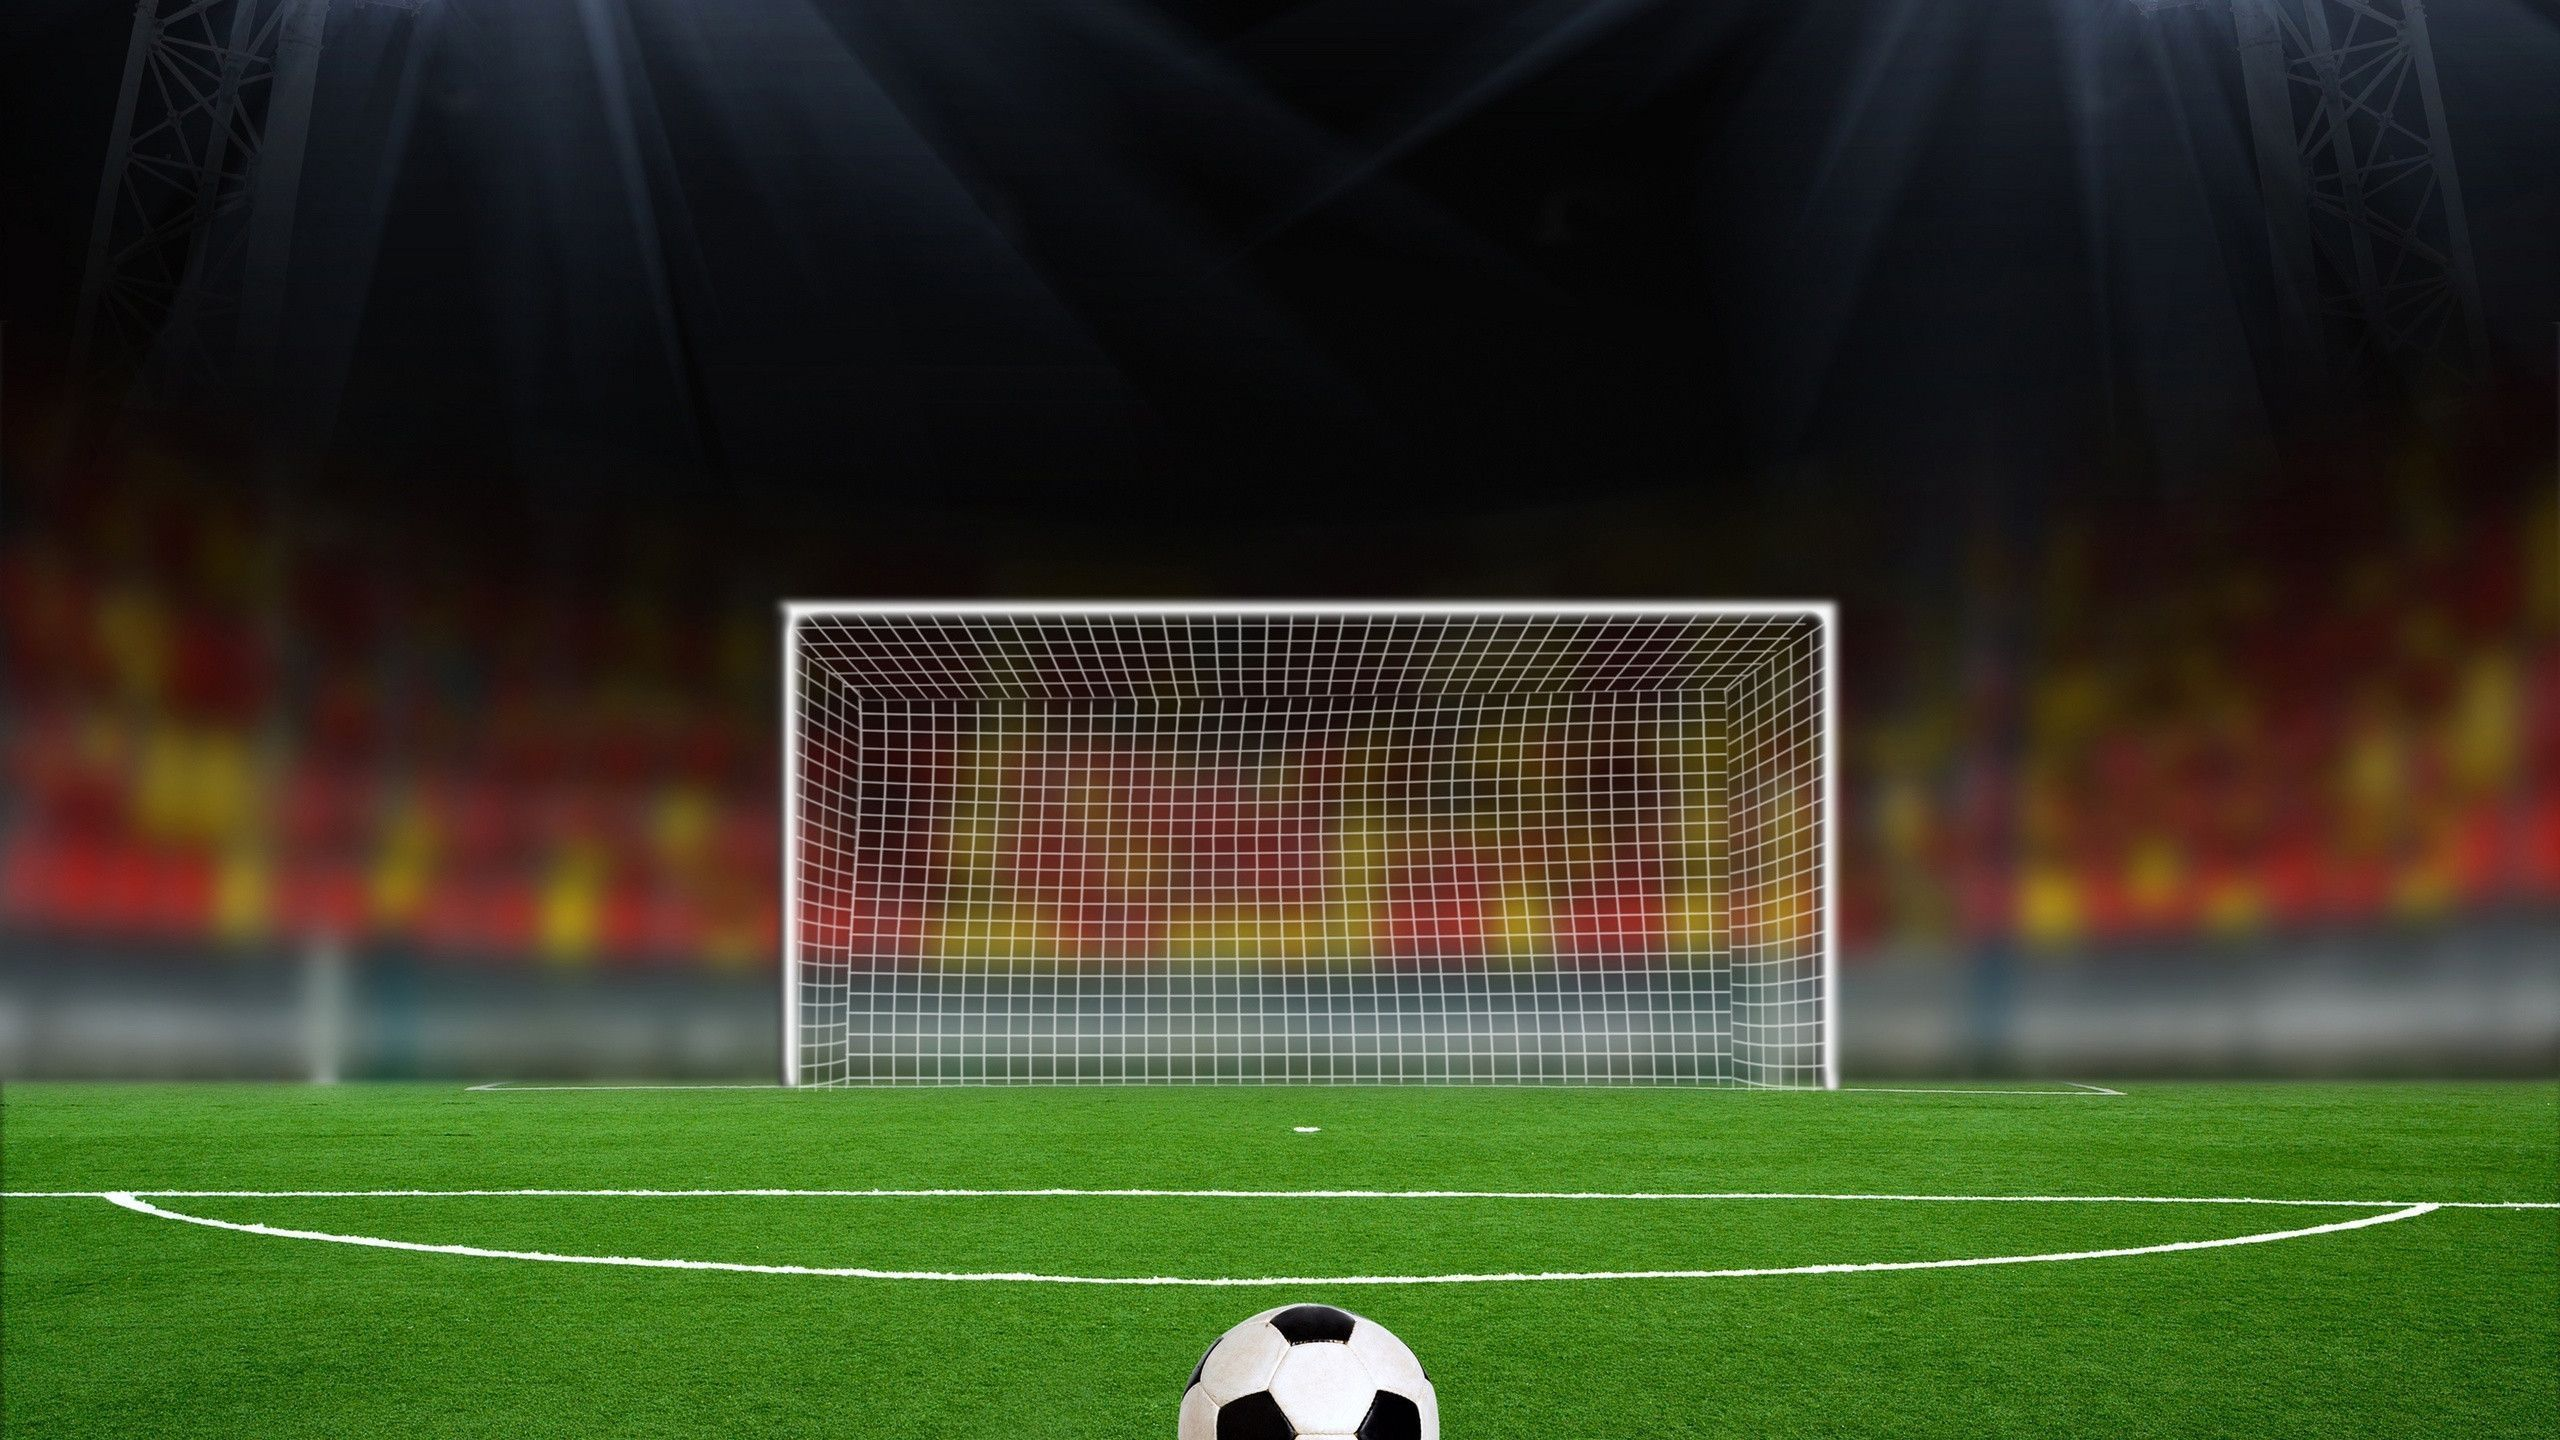 Football Wallpapers With Images Football Background Soccer Goal Football Field